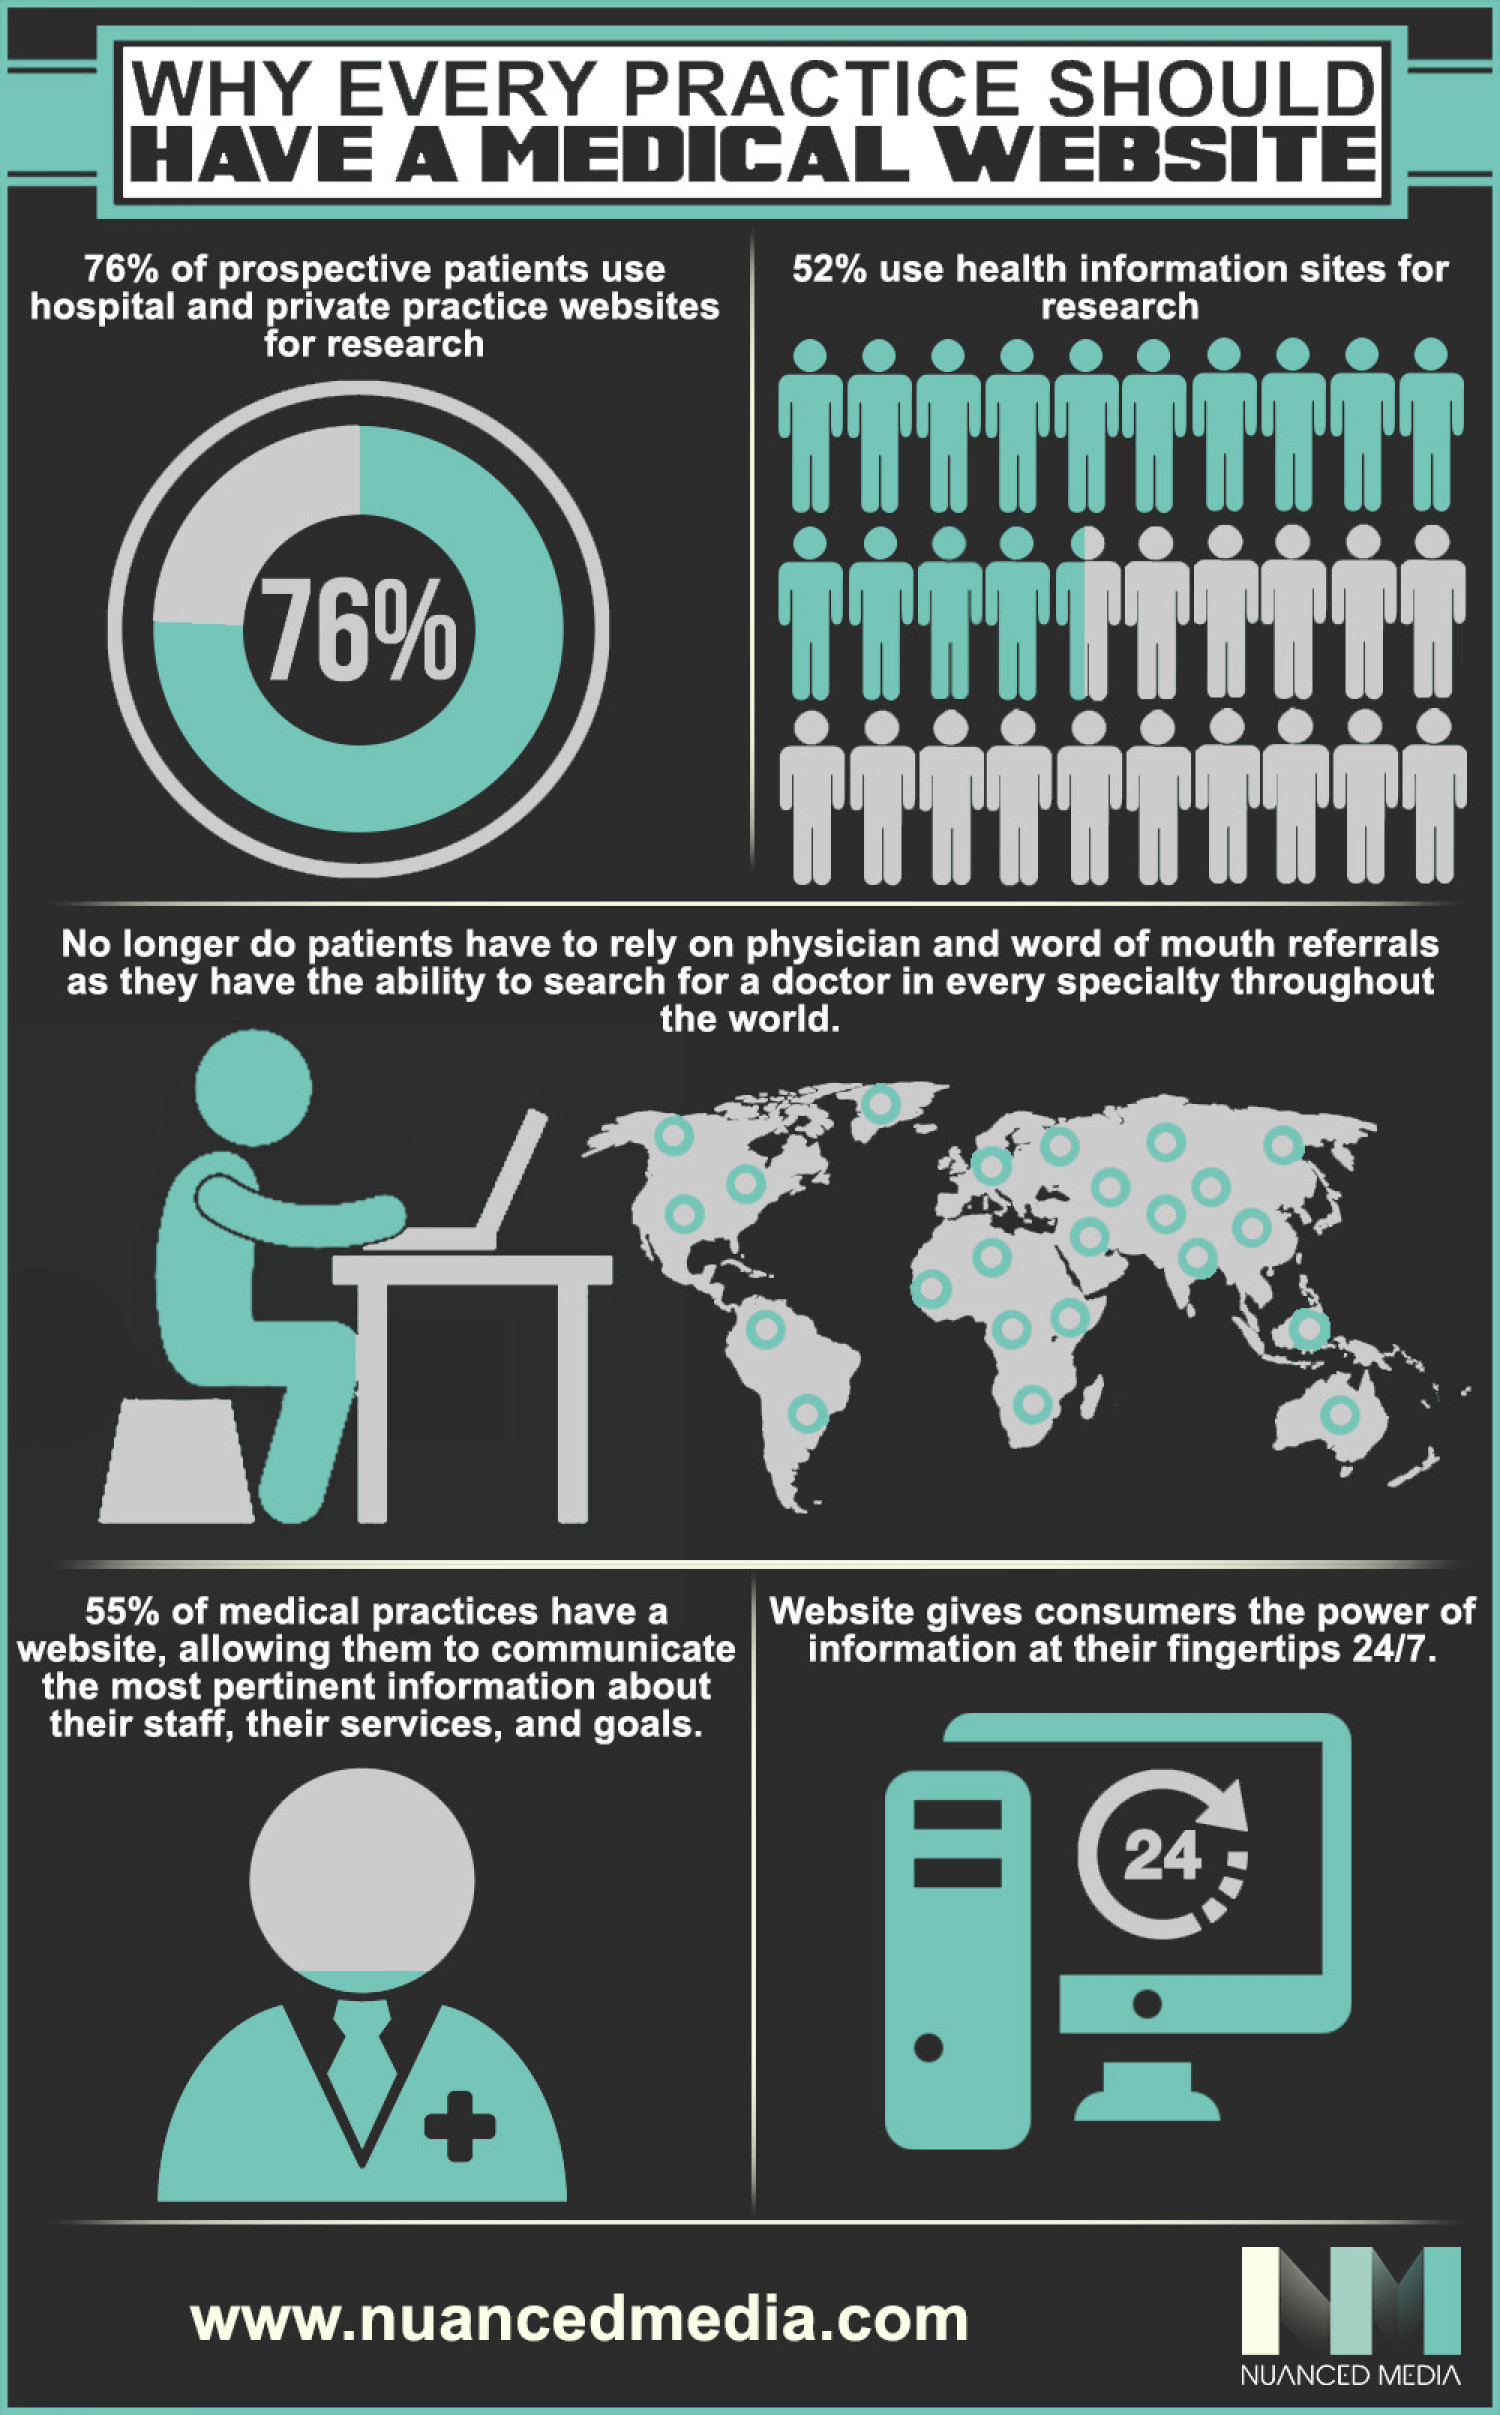 Why Every Practice Should Have A Medical Website Infographic